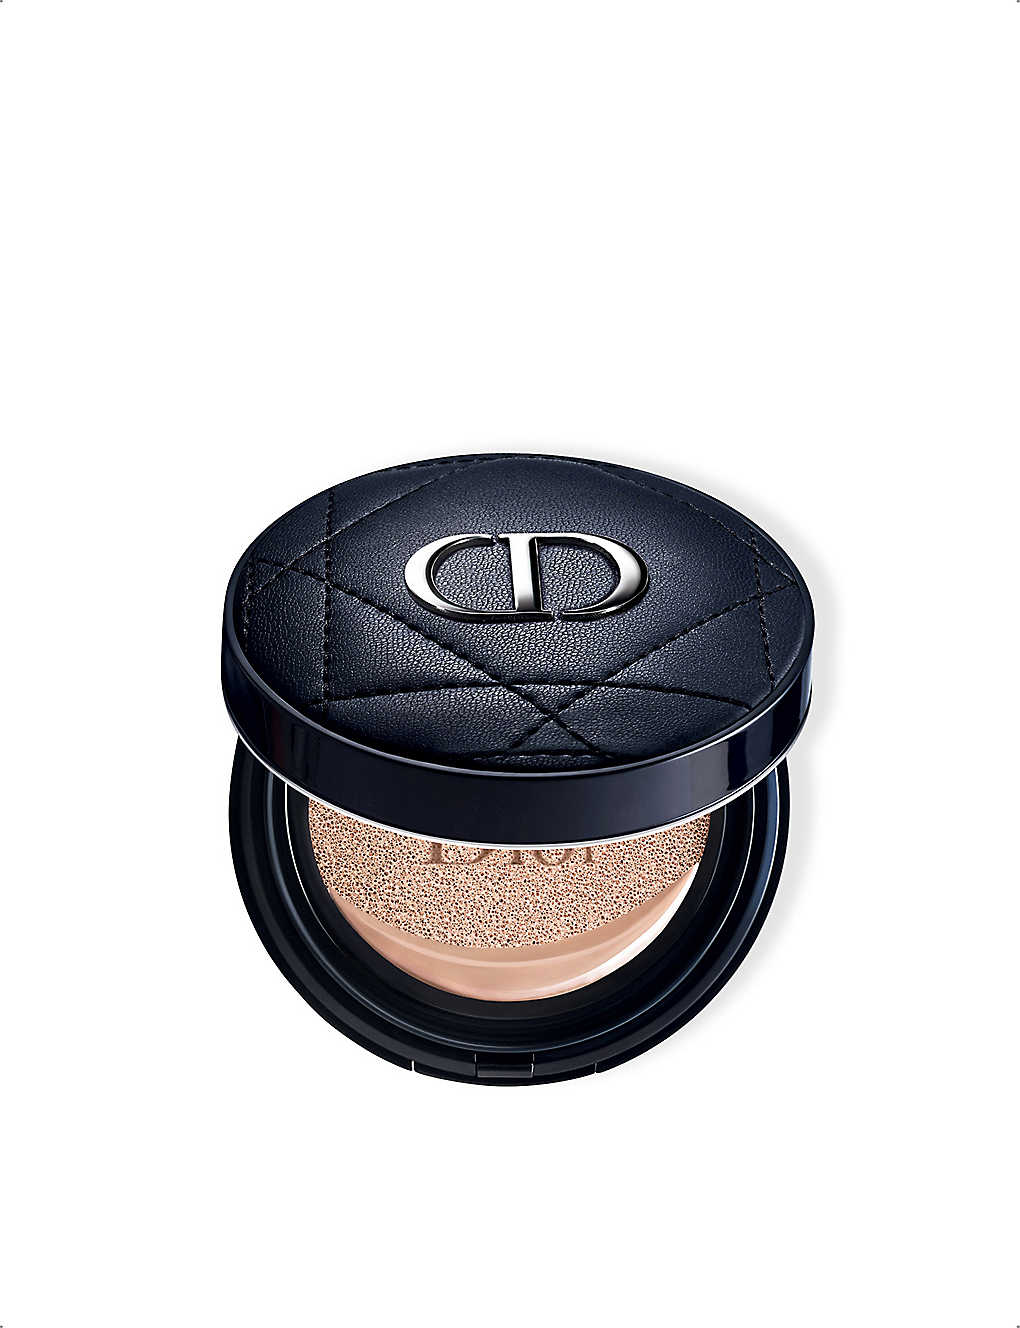 DIOR: Diorskin Forever Couture Perfect Cushion foundation 15g